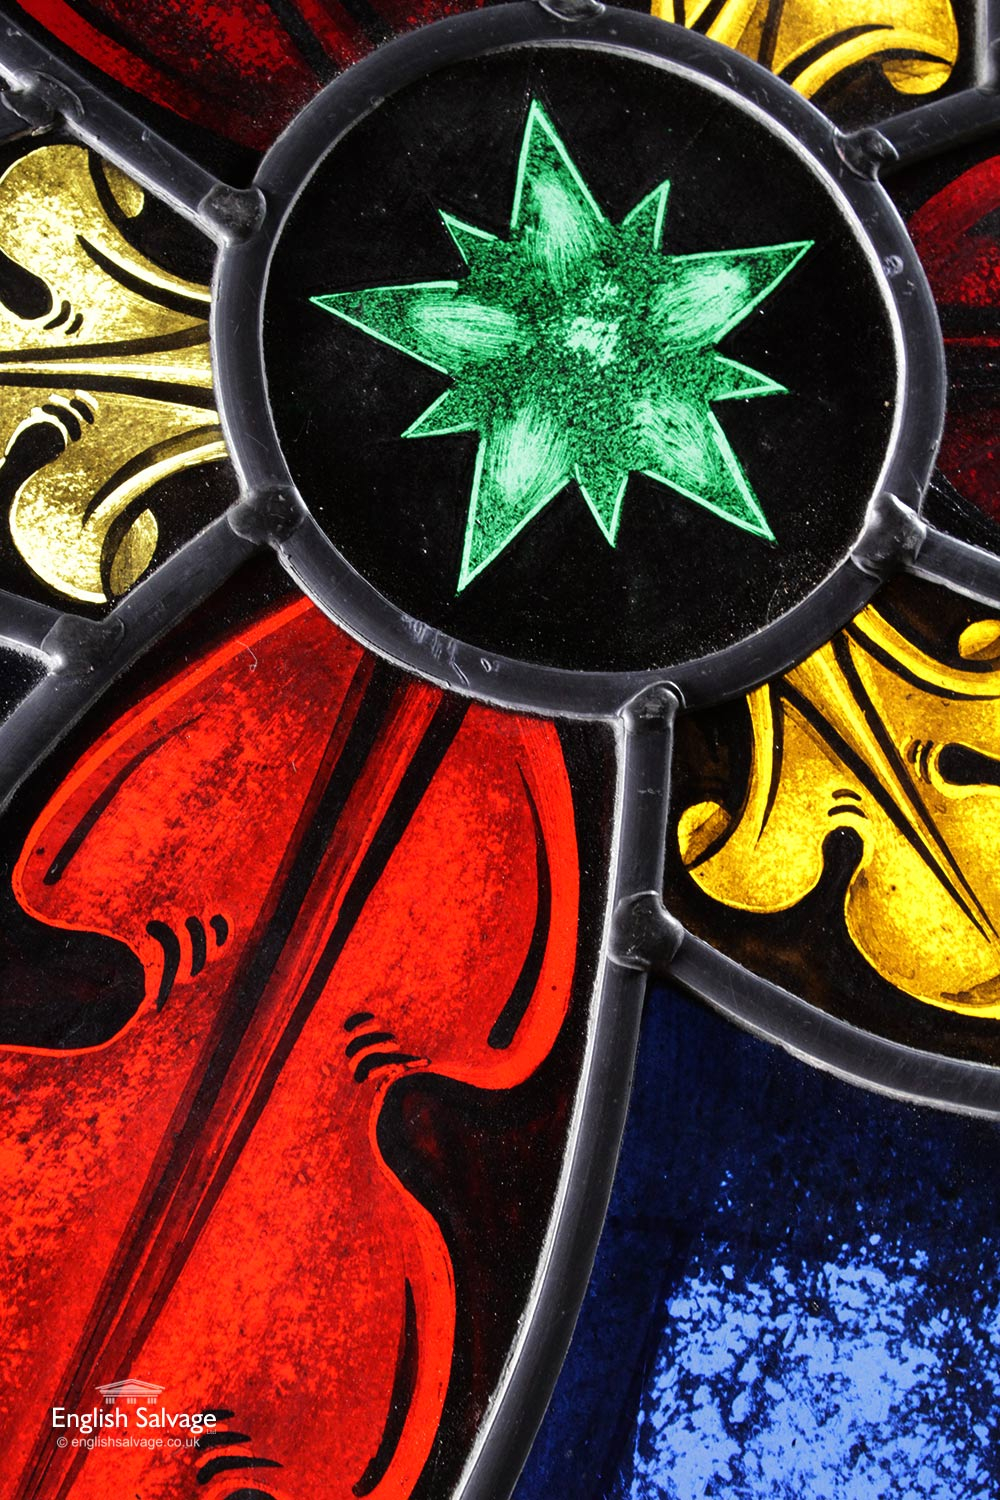 Salvaged Trefoil Stained Glass Panels